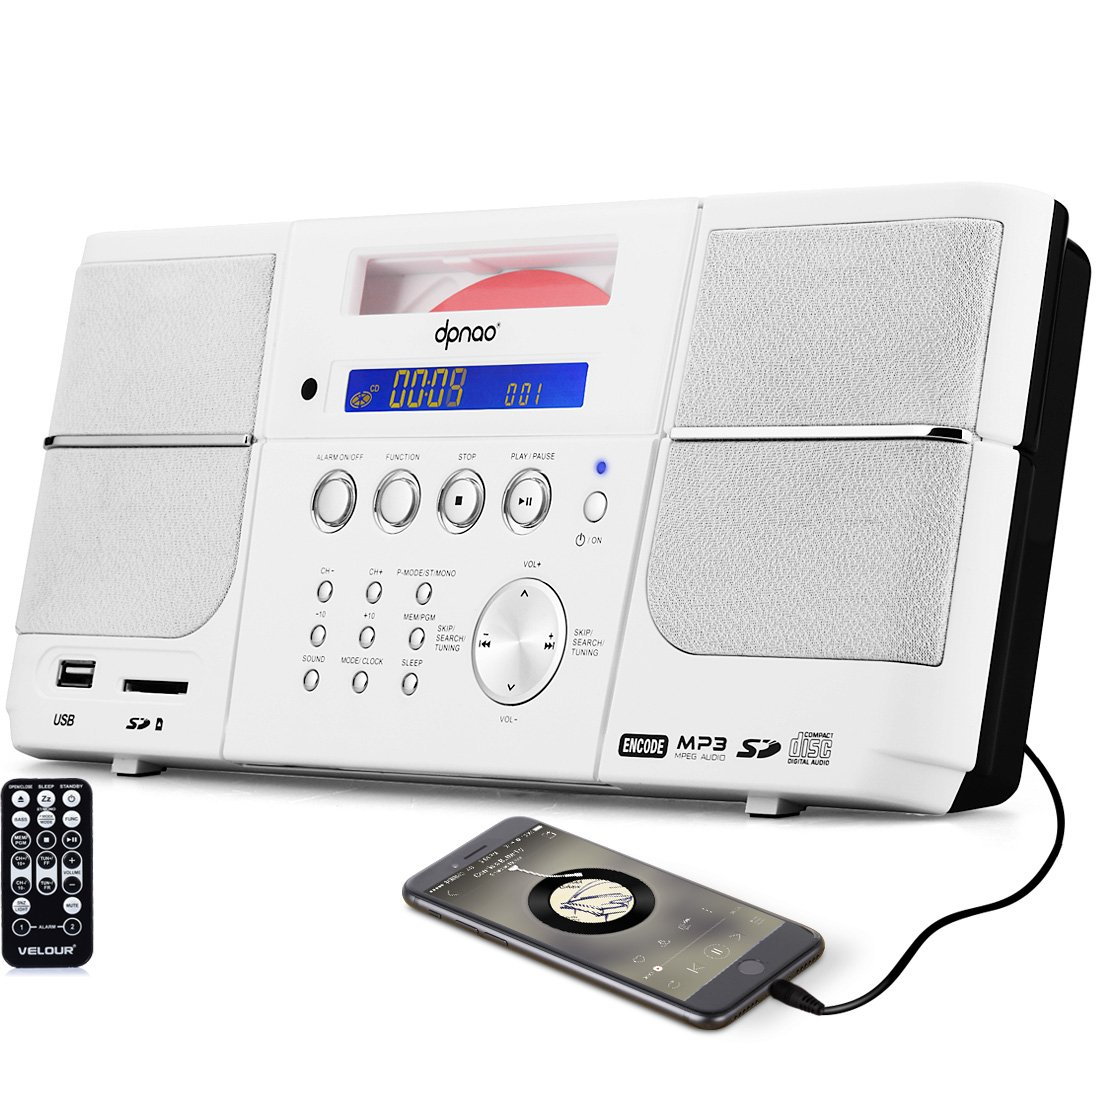 DPNAO Portable CD Player, Compact Stereo Boombox Wall Mountable with FM Radio Alarm Clock USB Aux-in Remote Headphone Jack for kids Home Bedrooms (White)